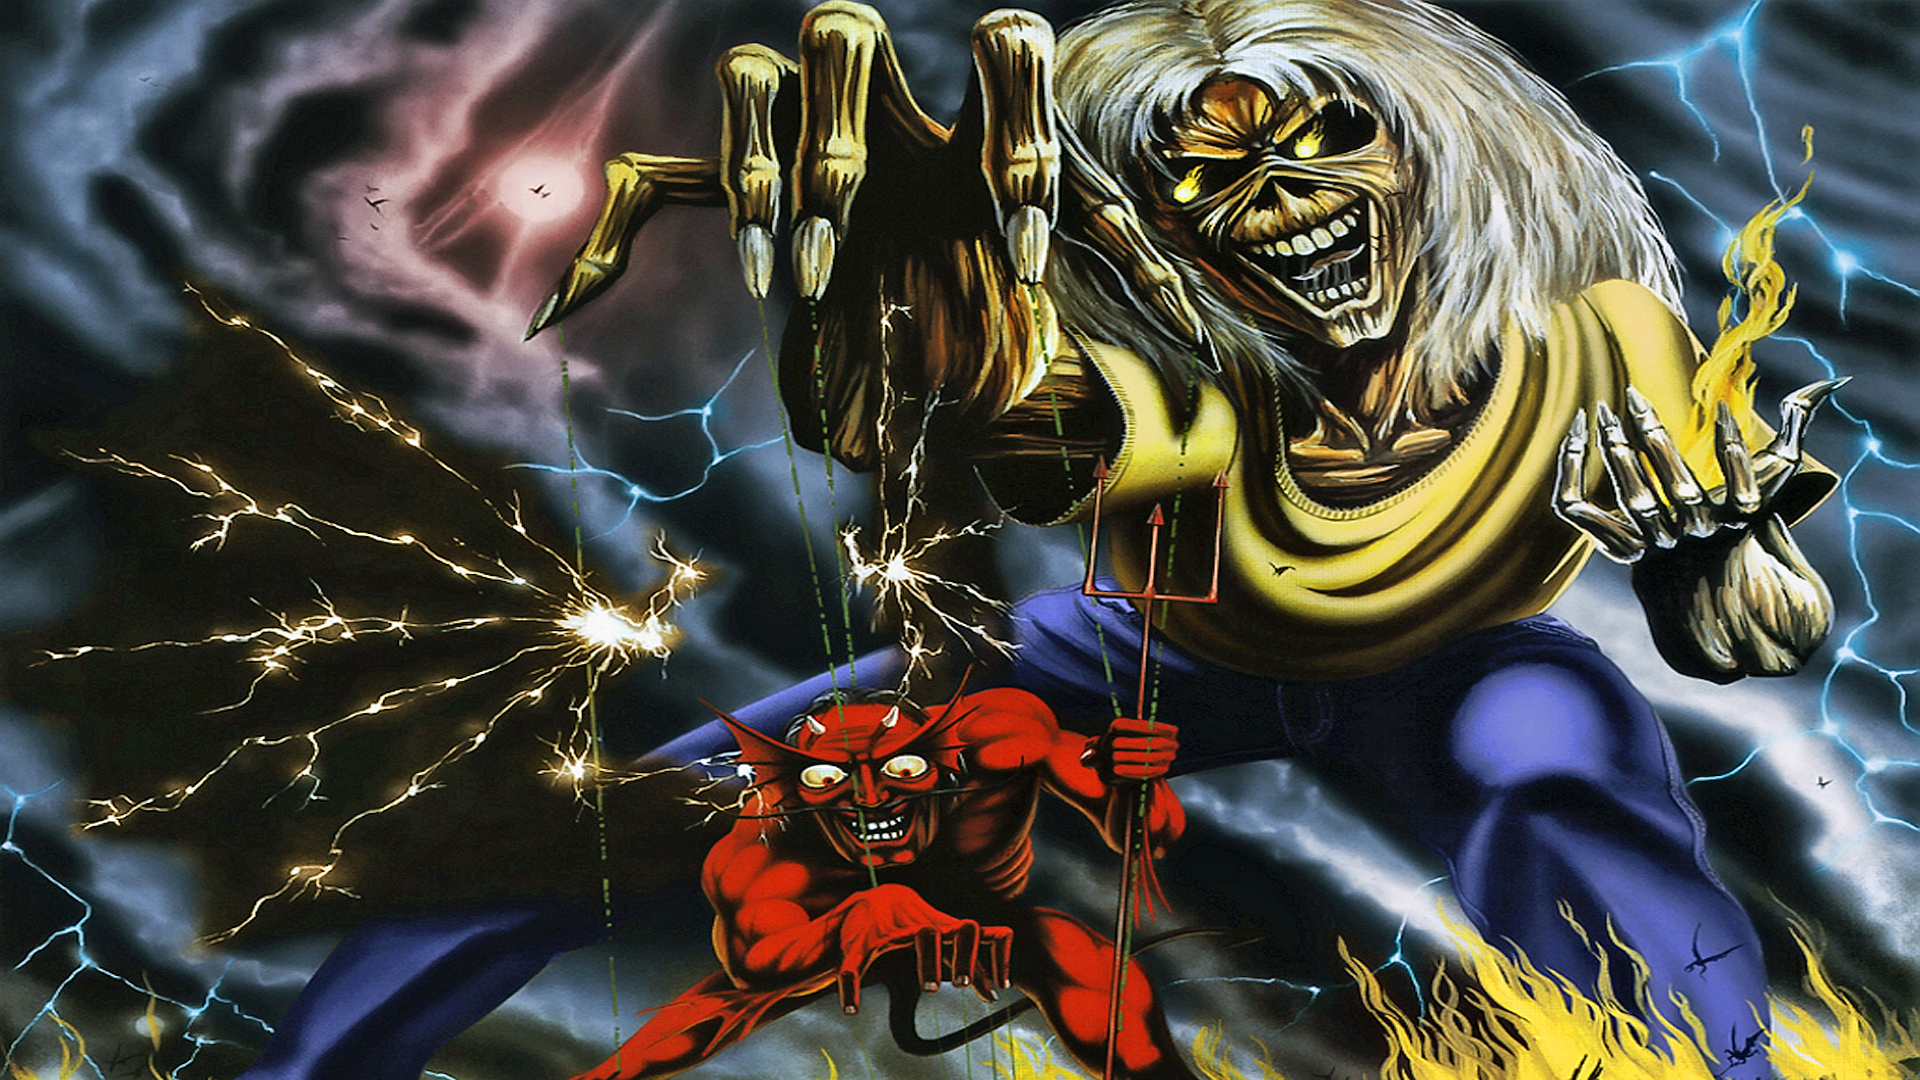 iron maiden wallpapers covers - photo #4